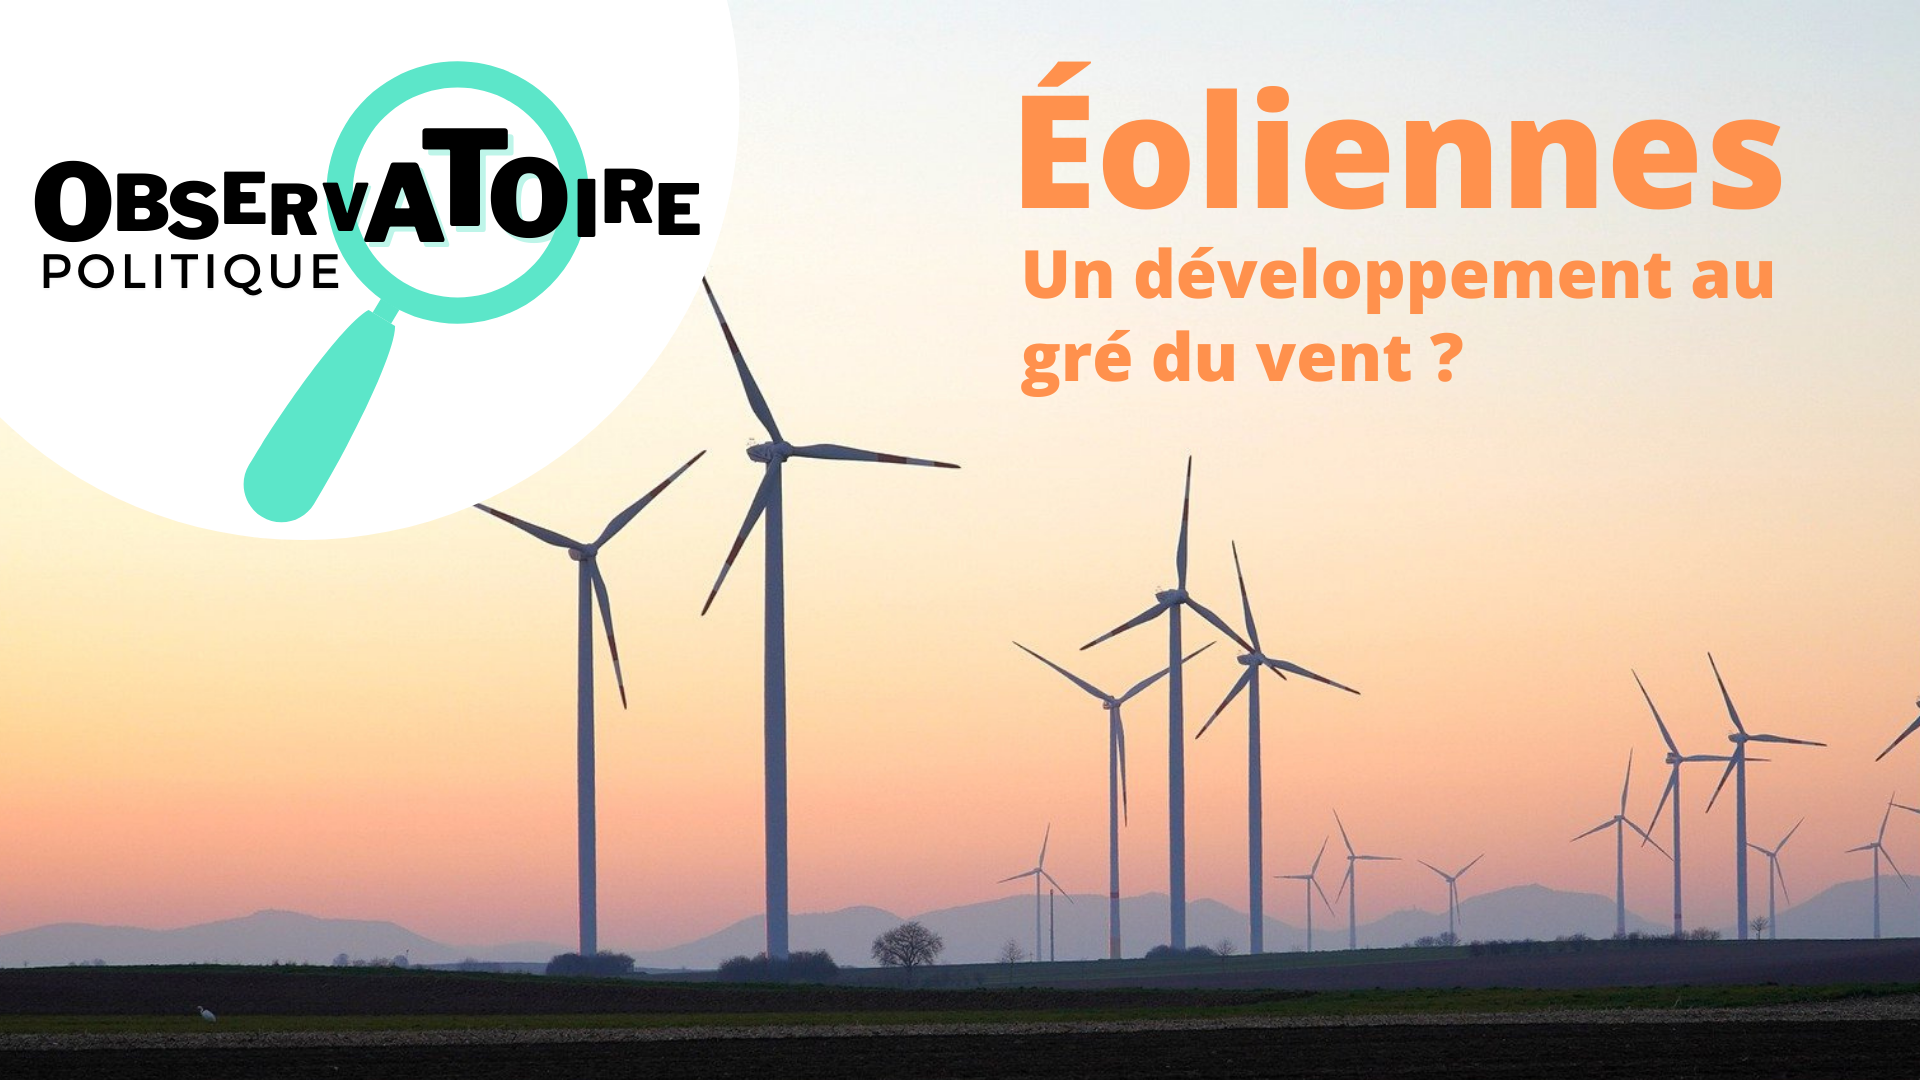 Obs pol eoliennes